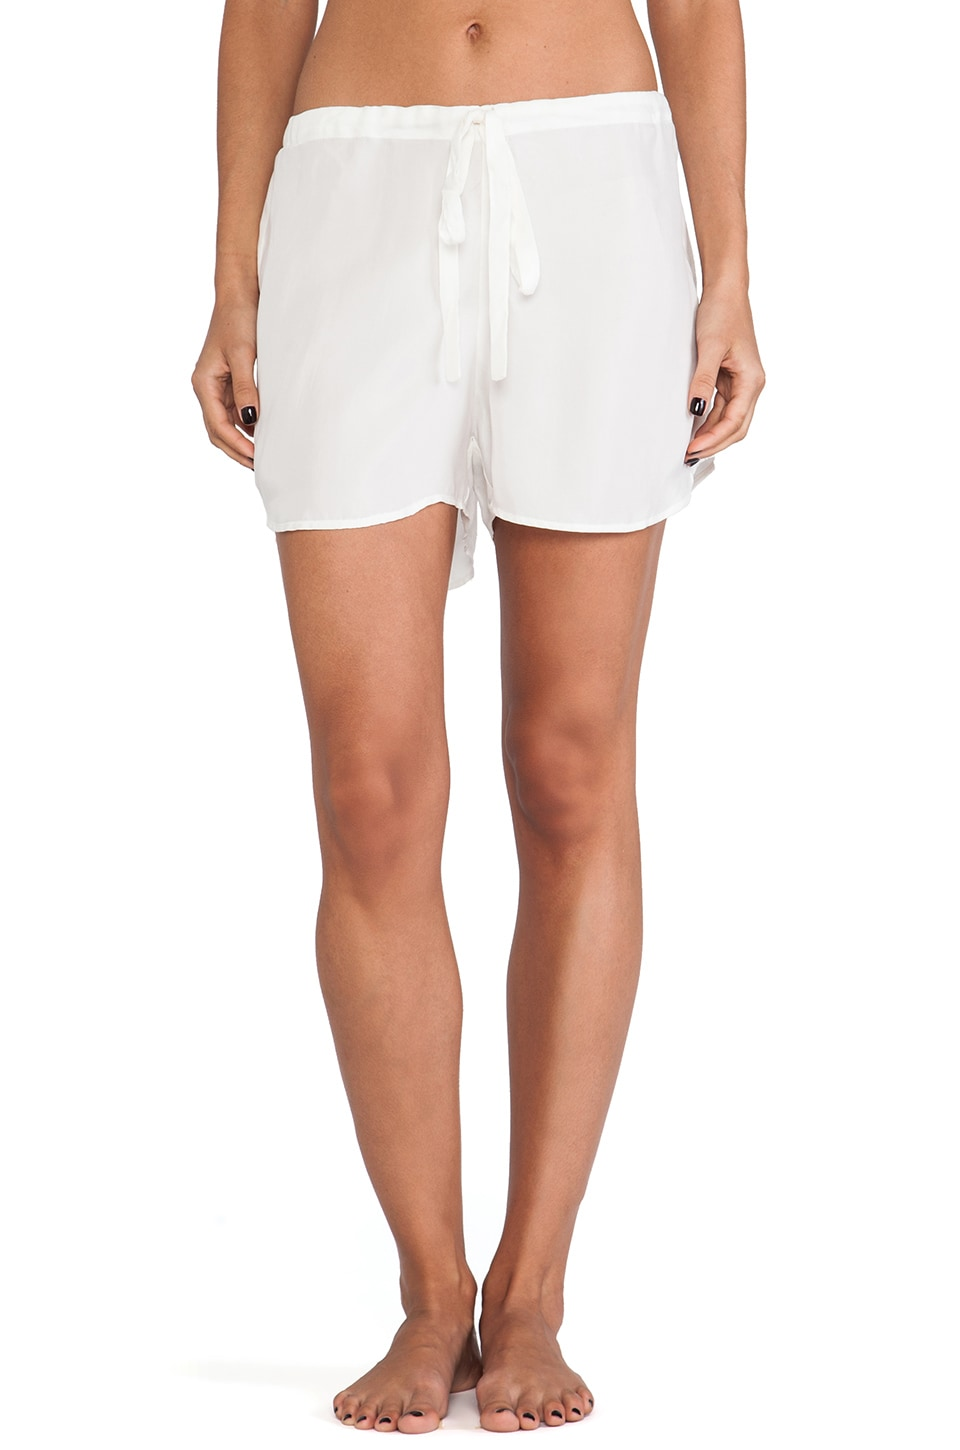 Lonely Drawstring Short in Ivory